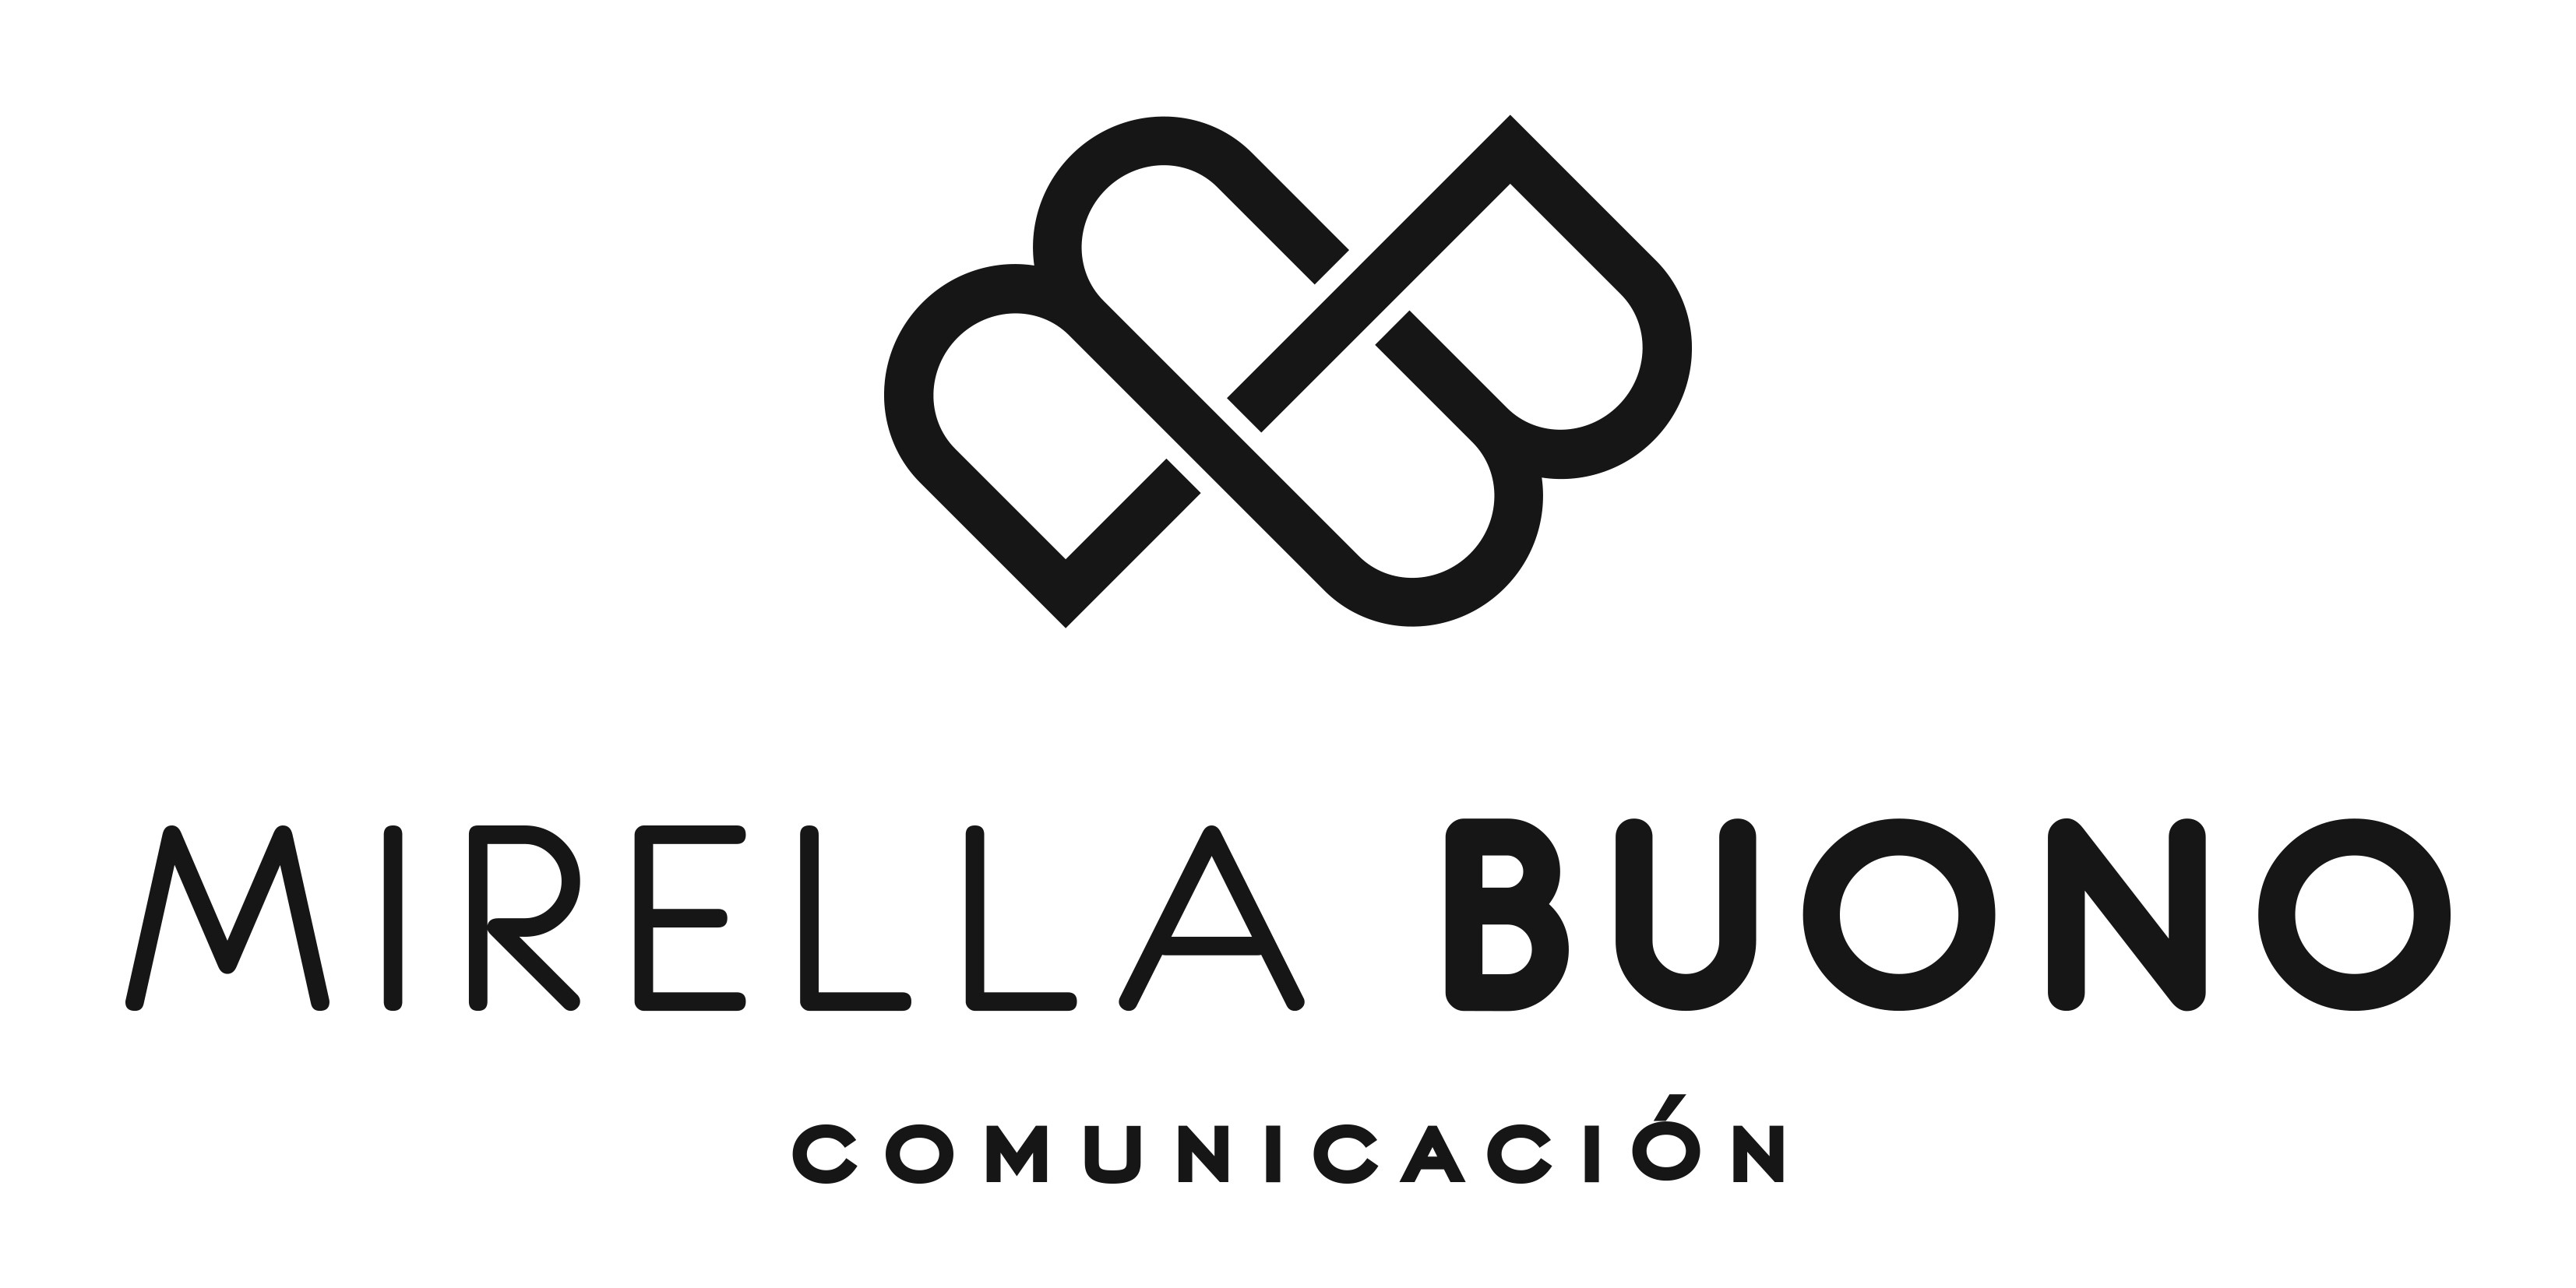 ¡Surprise me with an ingenious logo for my personal branding!